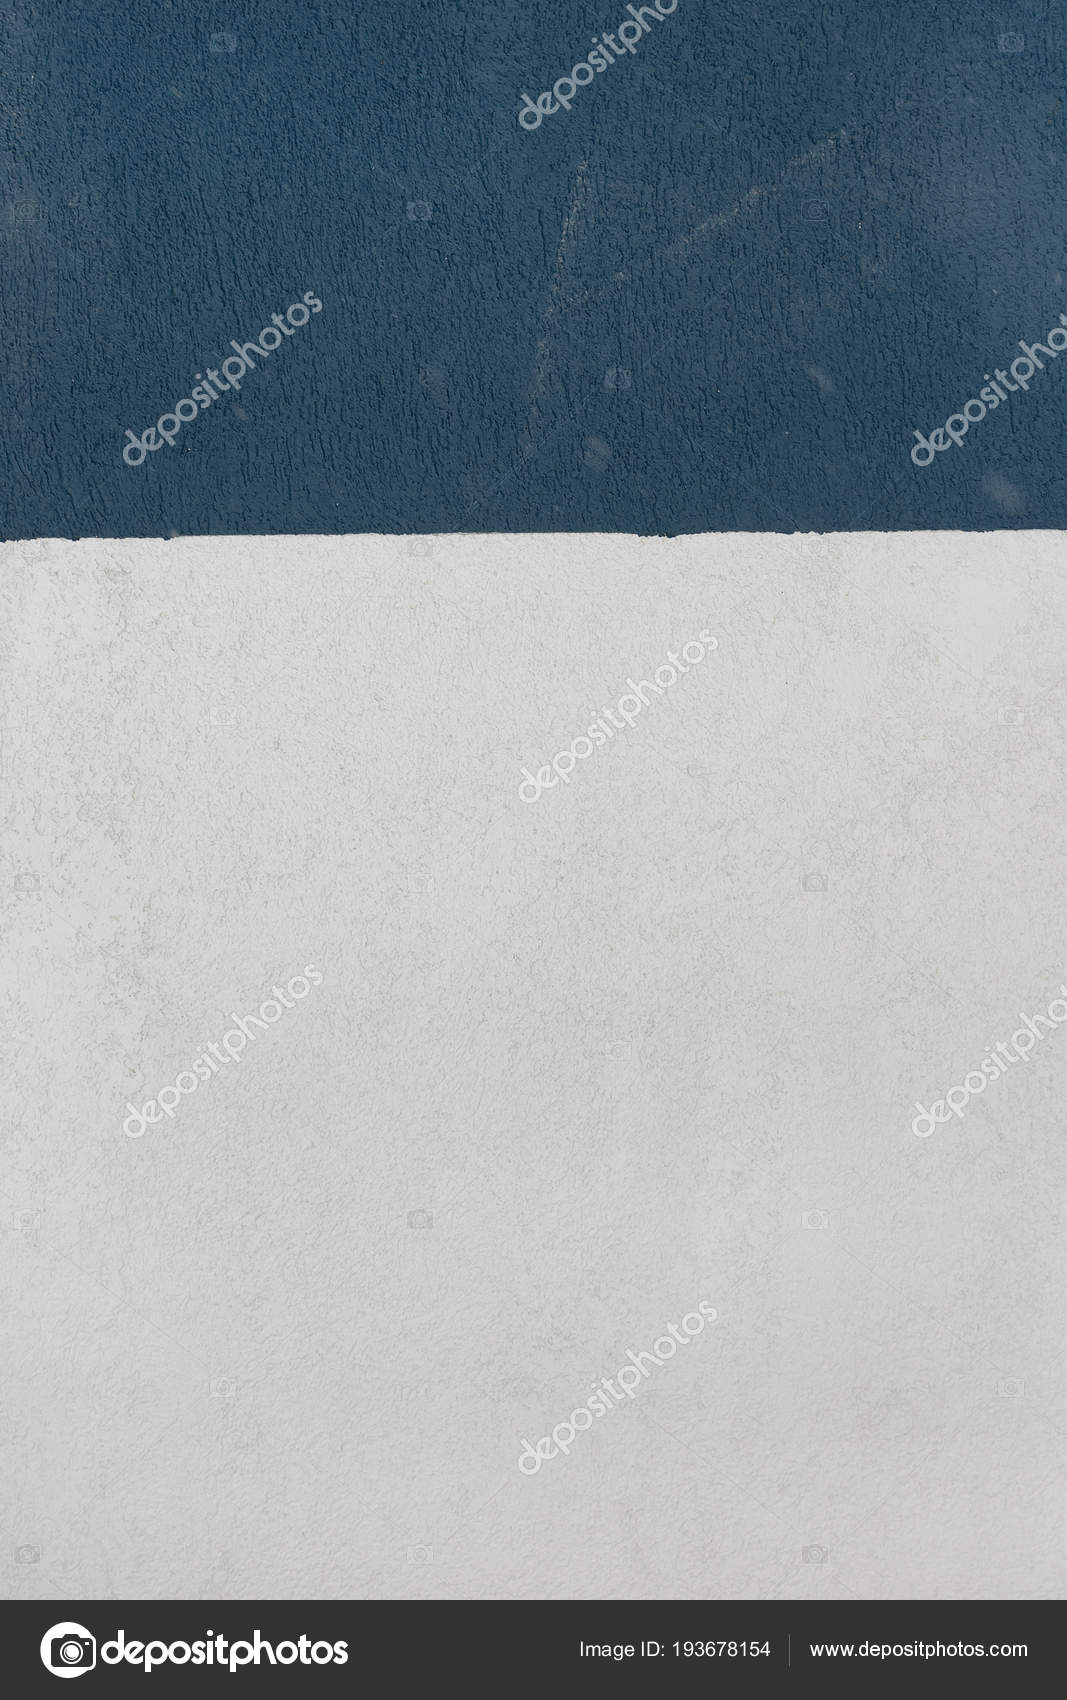 A Wall With A Plaster Texture Painted In Two Colors White And Blue Color Beautiful Background Stock Photo Image By C Switch 84 193678154